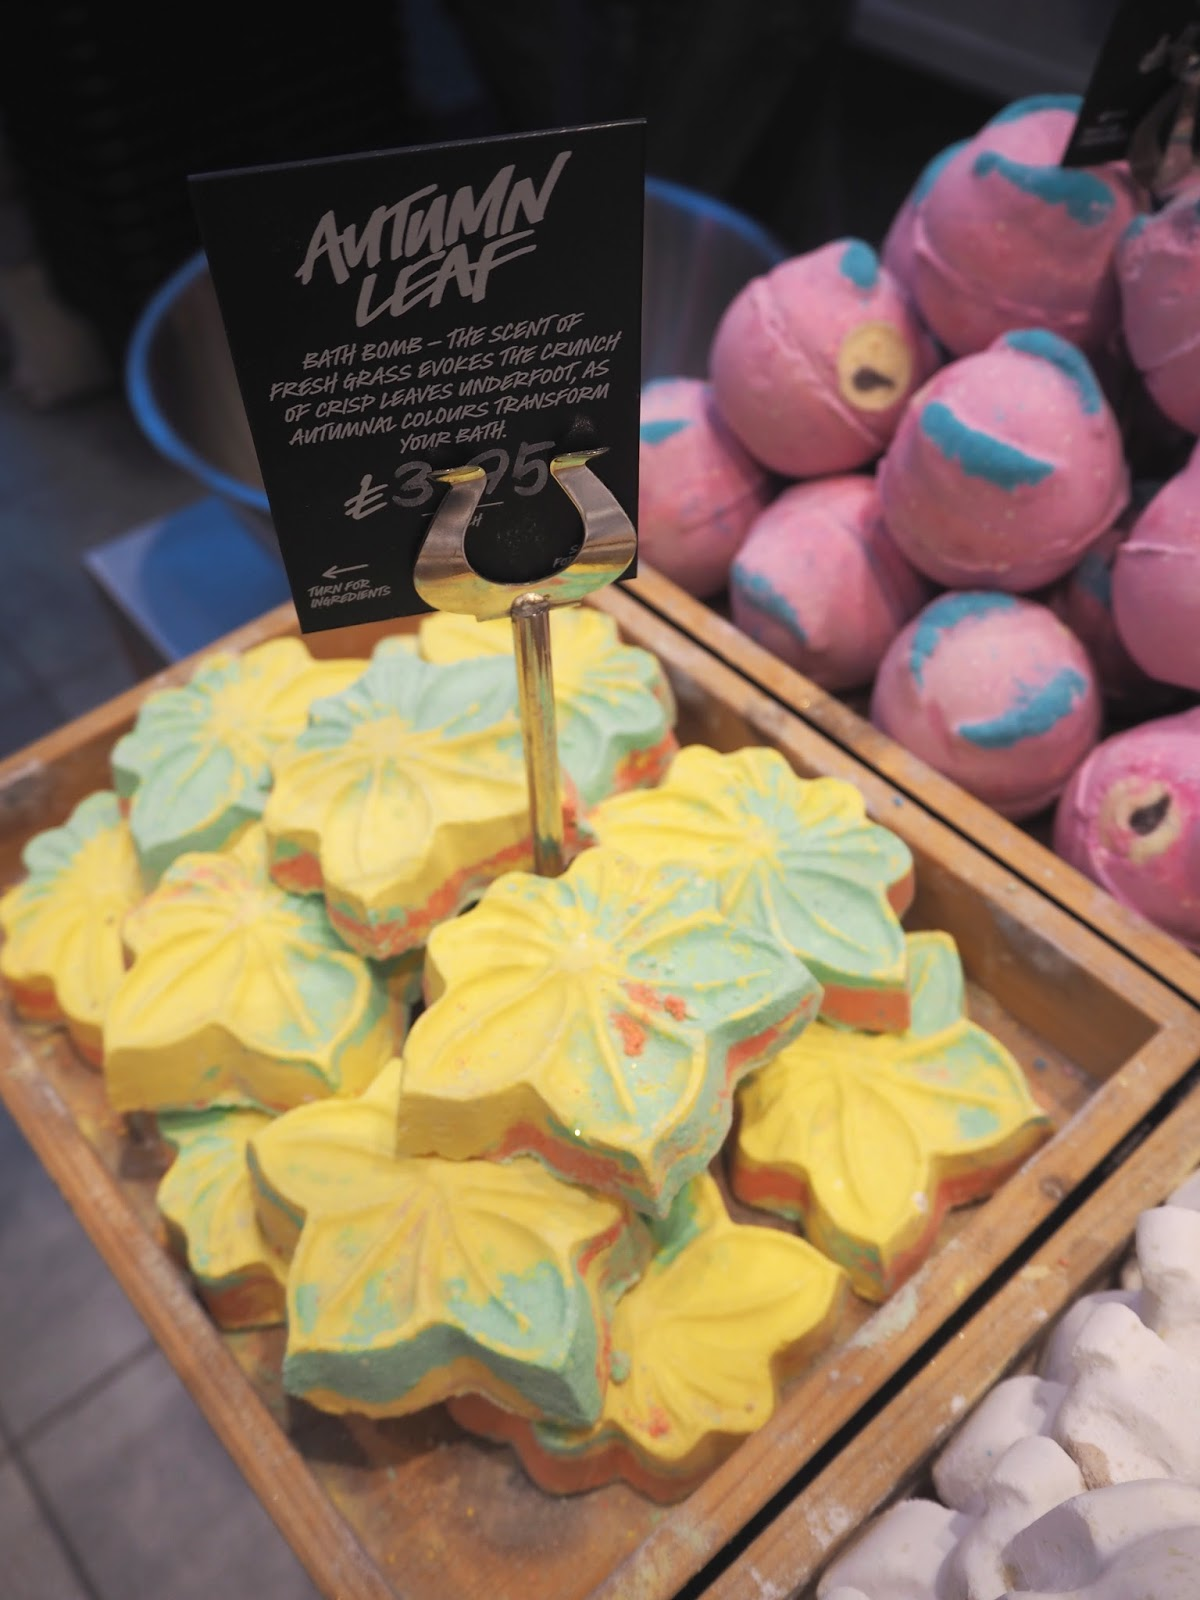 Lush Halloween Collection 2016, Katie Kirk Loves, Autumn Leaf Bath Bomb, Beauty Blogger, Bath Products, Lush UK